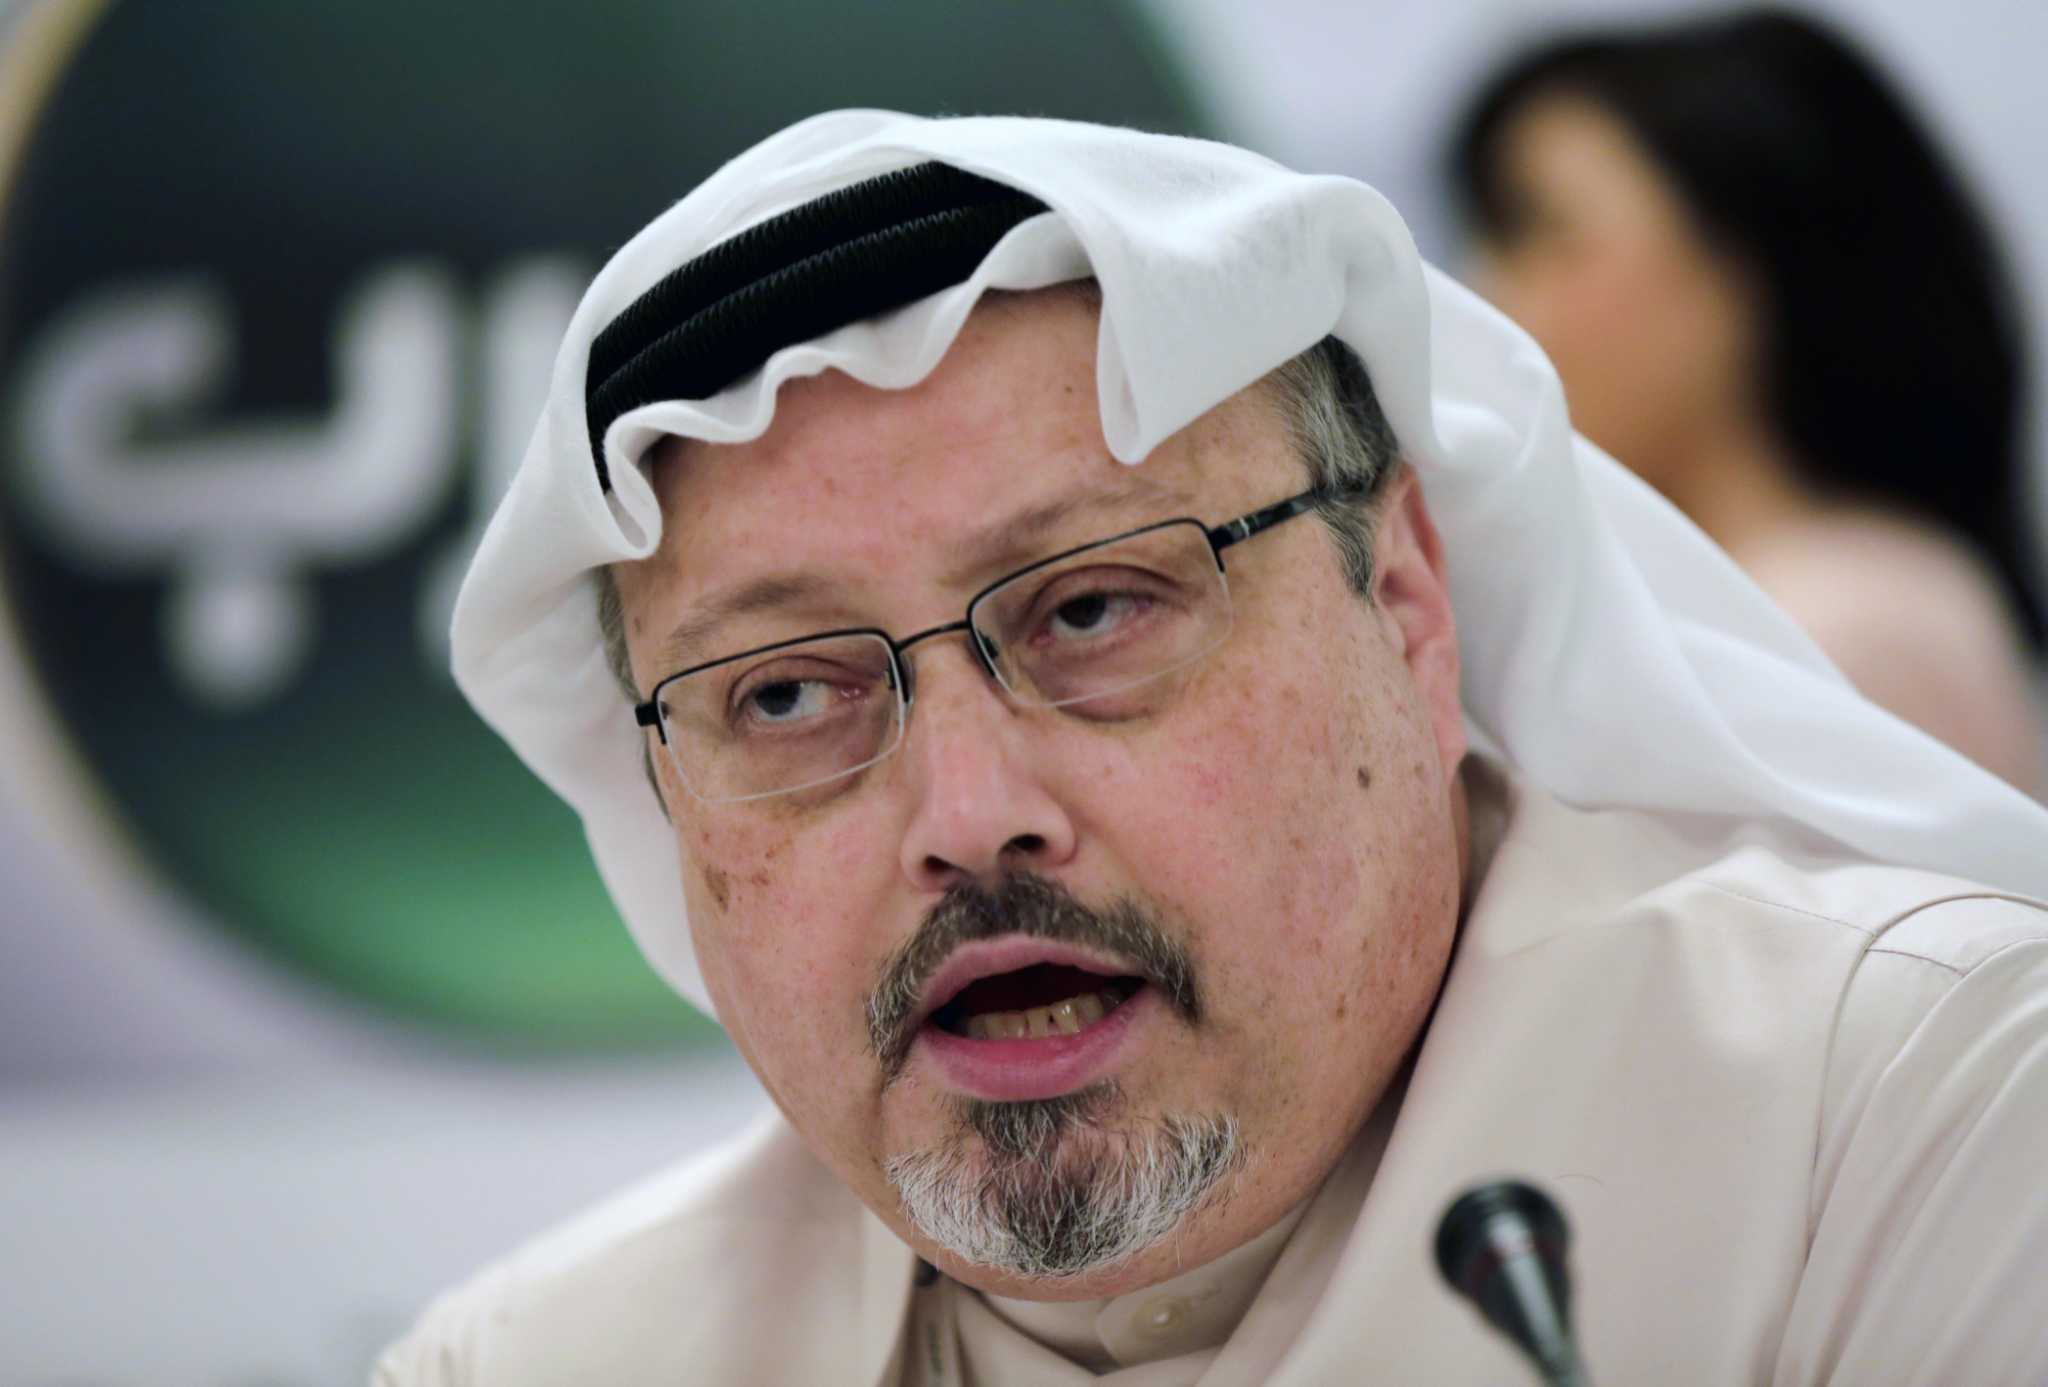 Saudi Arabia's violence against journalists unsettling [Opinion]